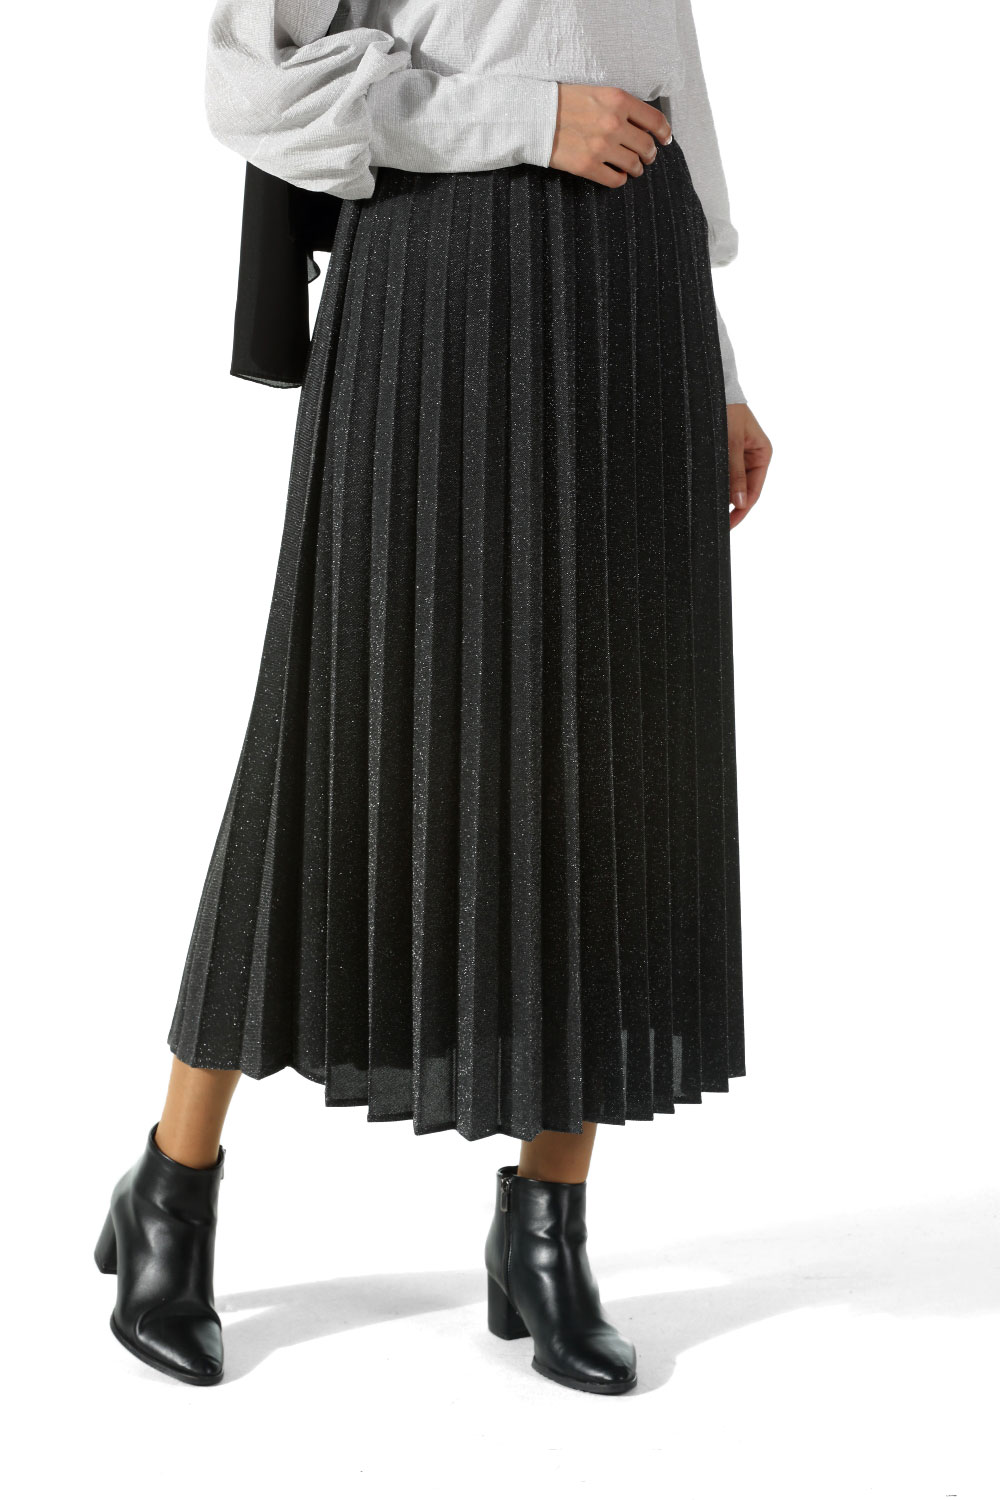 SILVERY PLEATED SKIRT